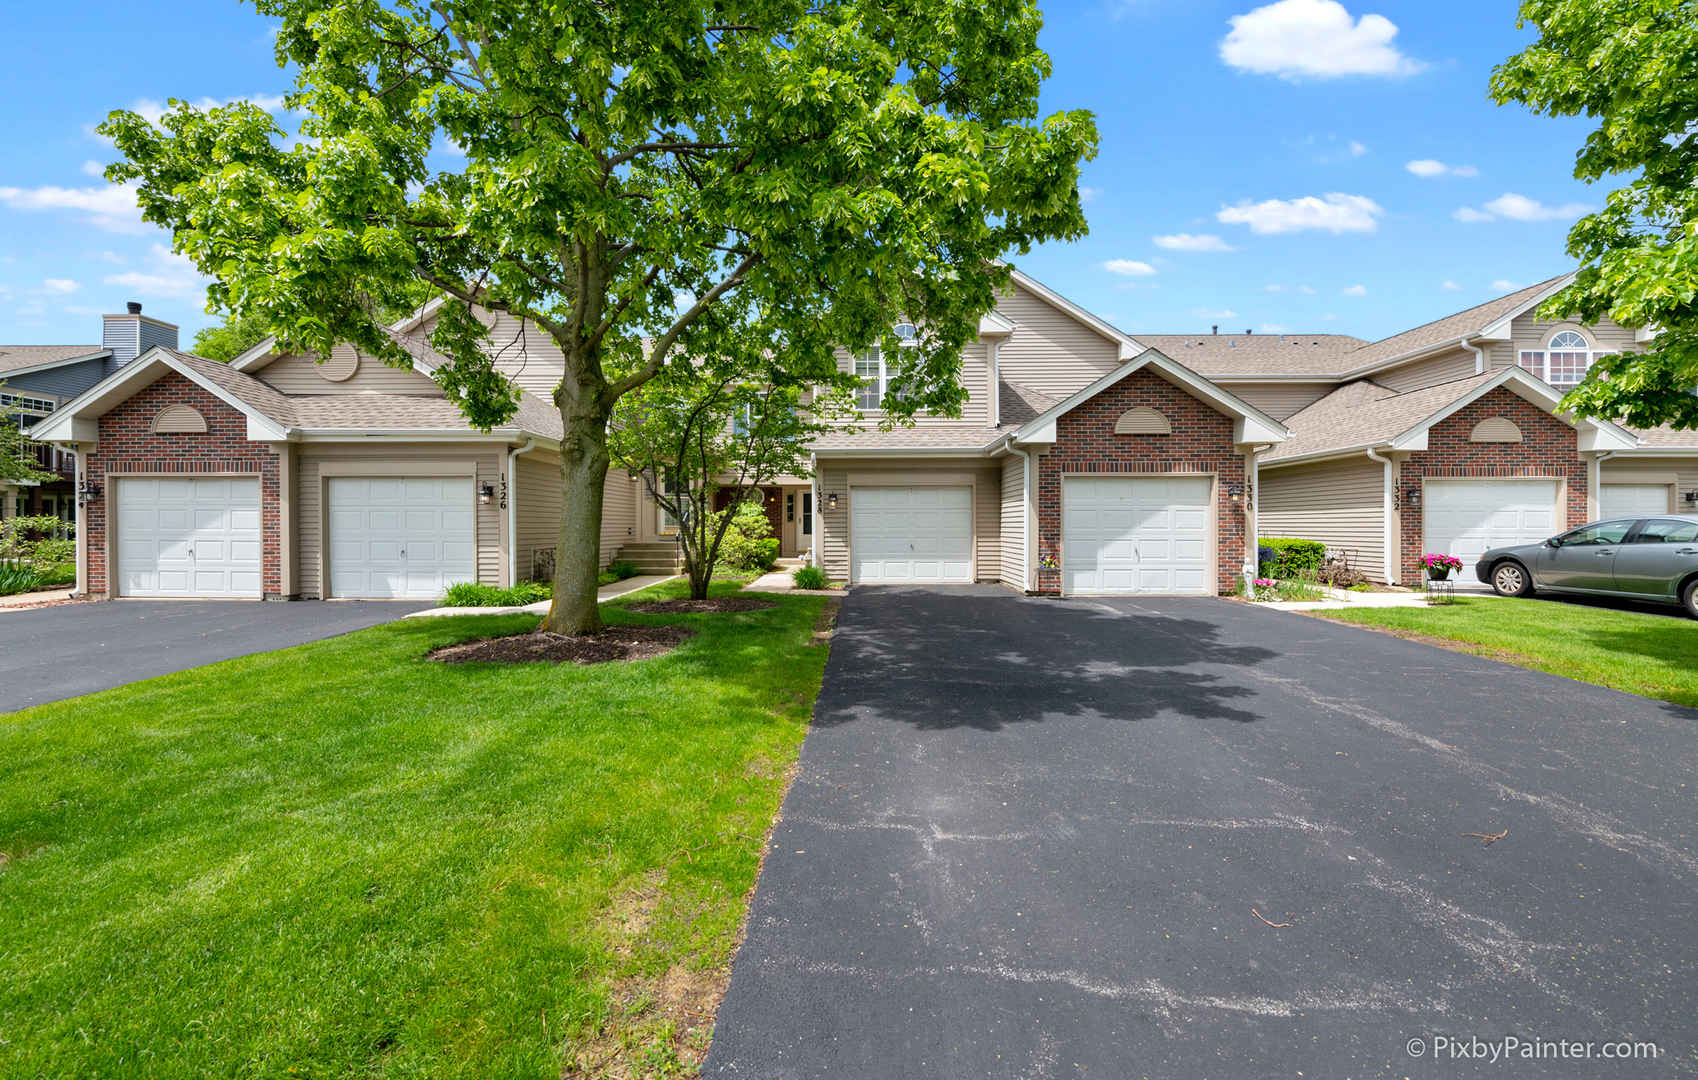 Photo for 1328 Shawford Way, ELGIN, IL 60120 (MLS # 10398492)